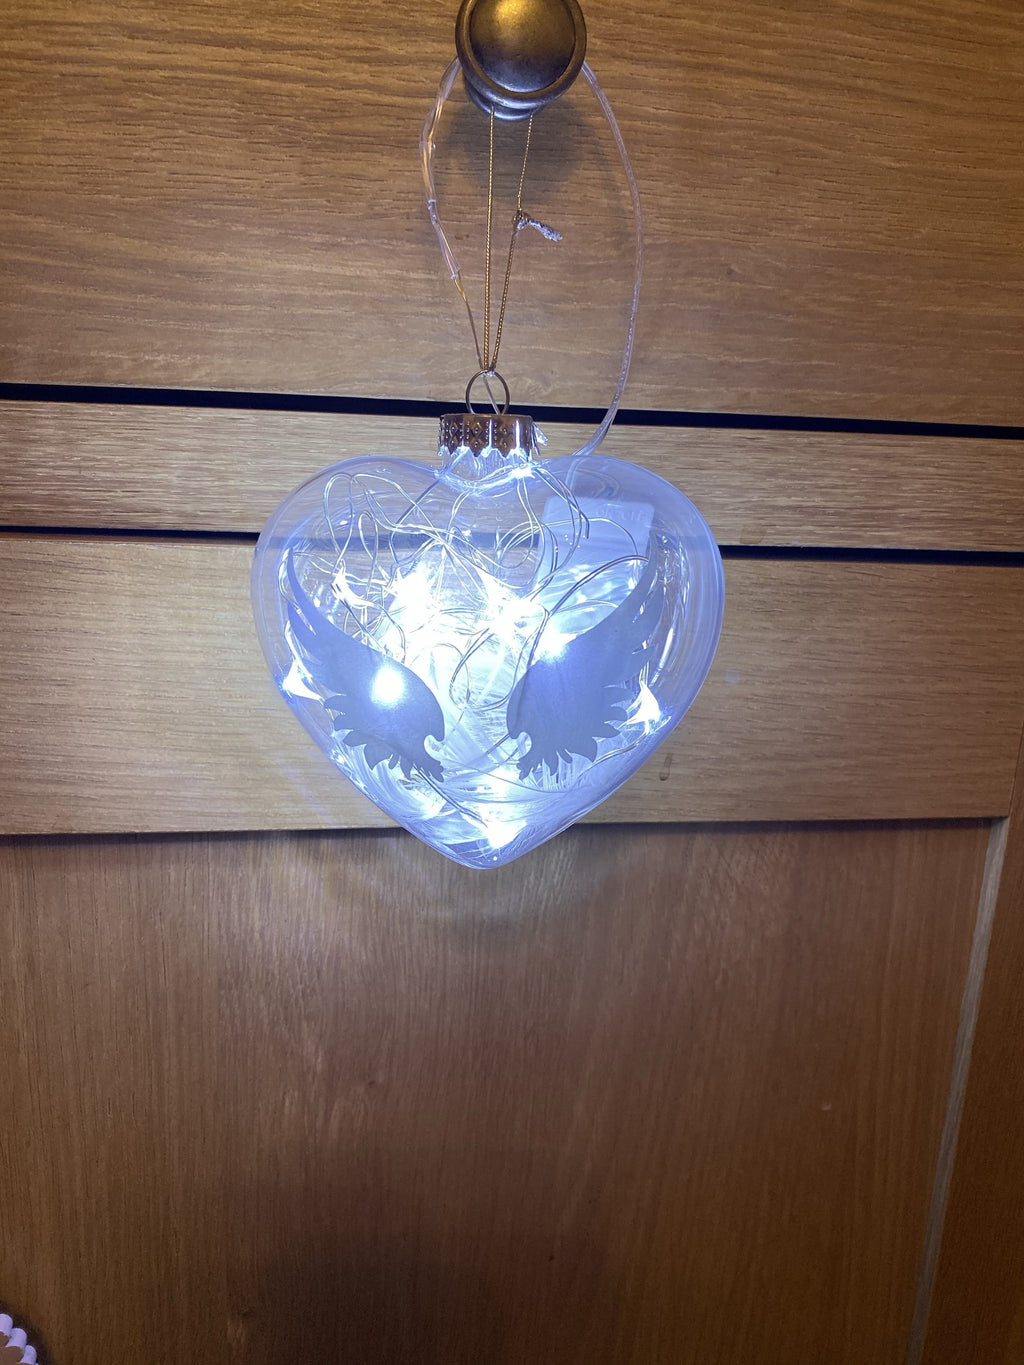 Glass in memory bauble with LED lights